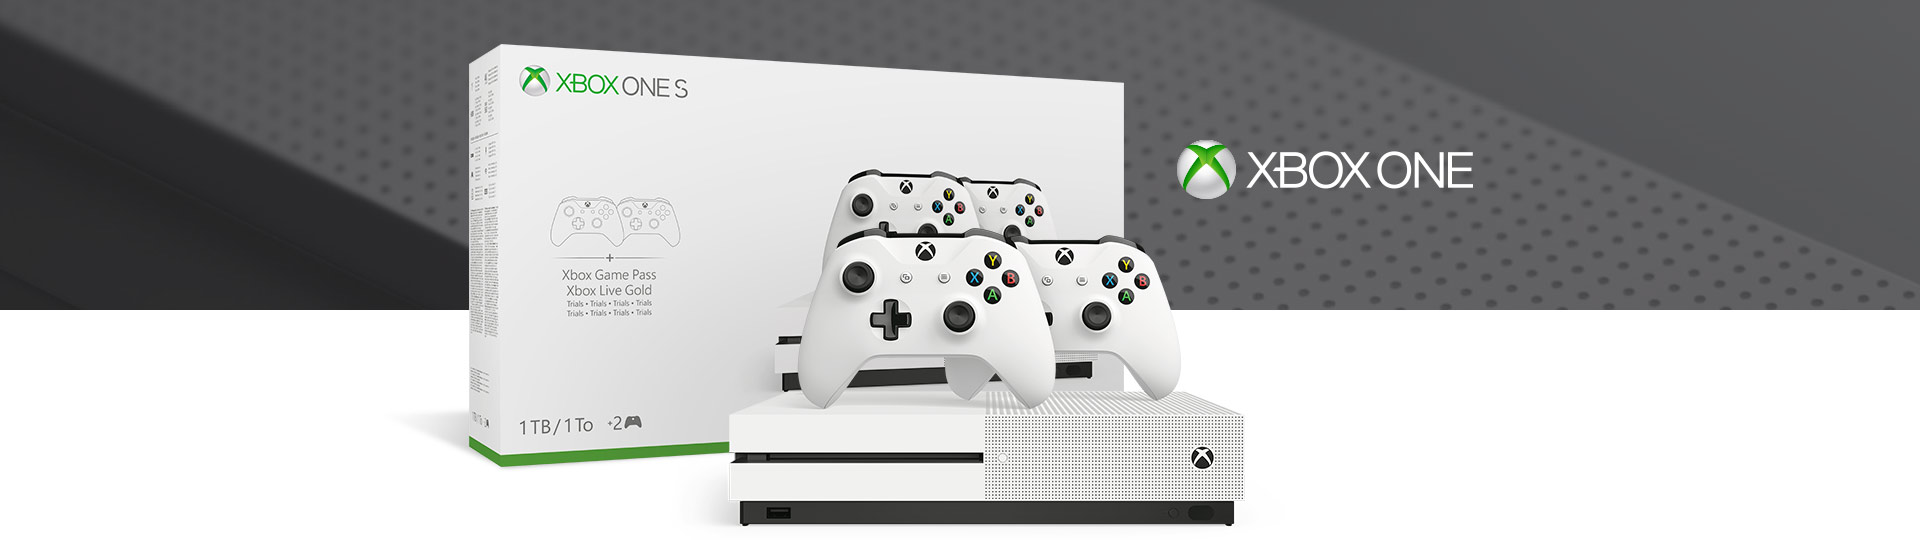 xbox one s two controller bundle 1tb xbox